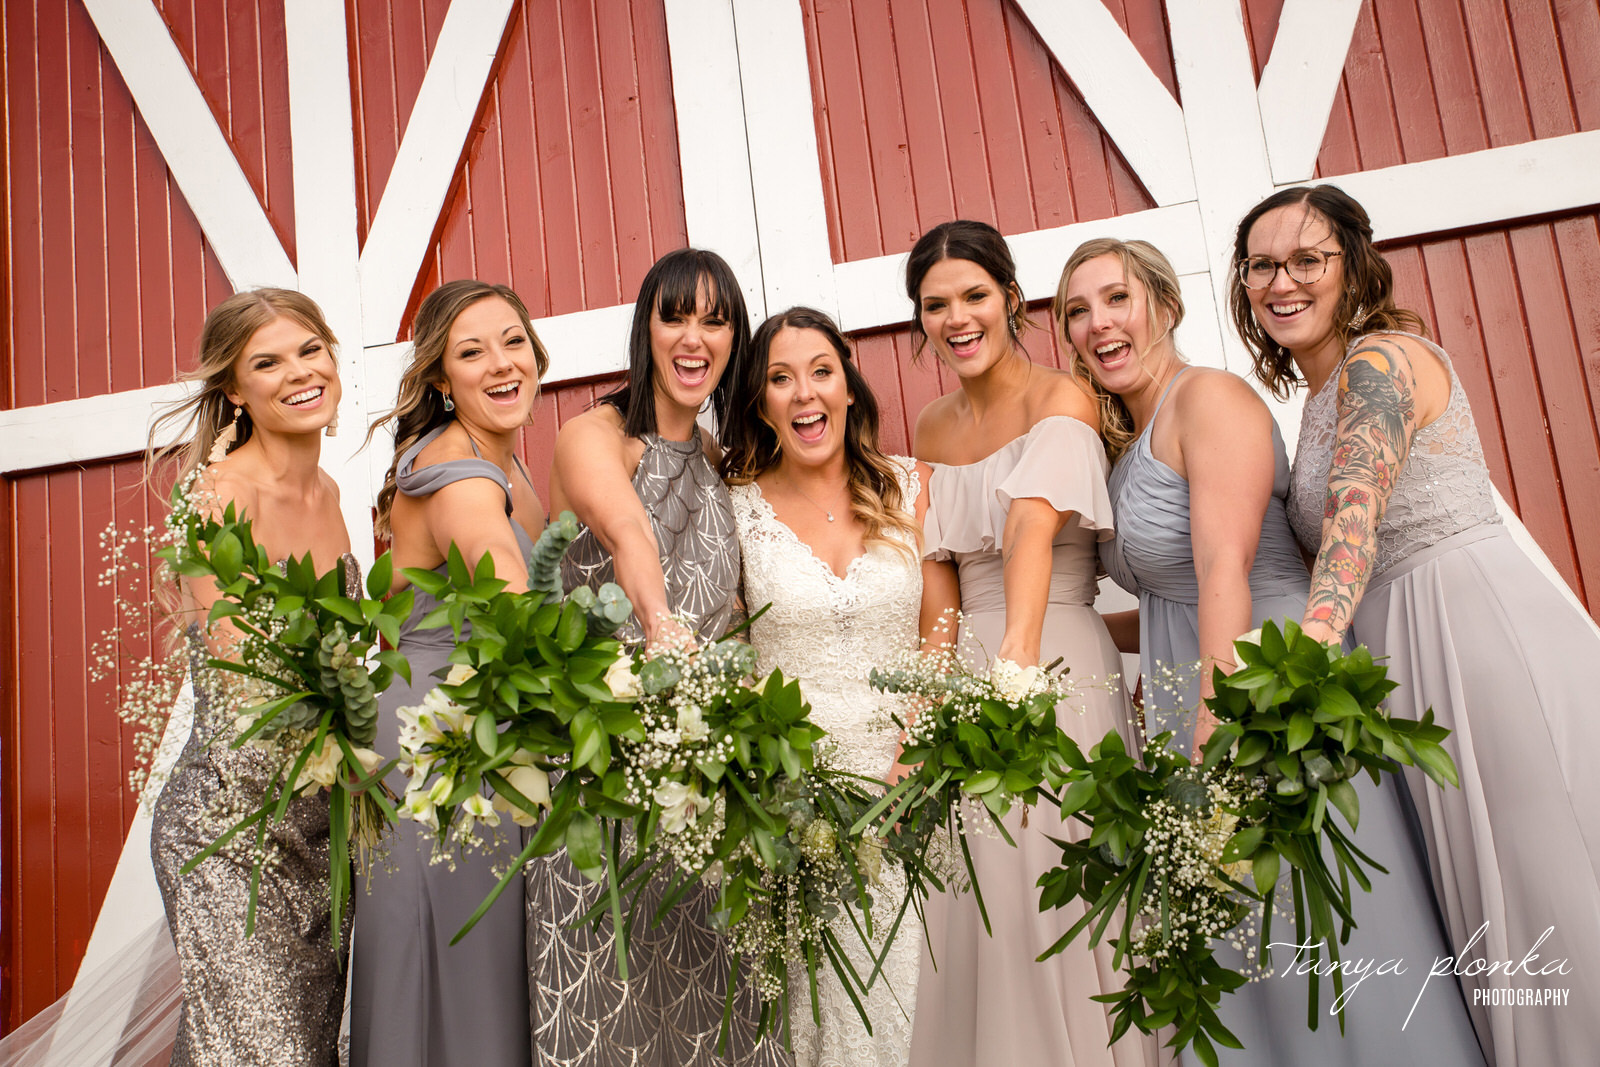 bridesmaids and brides hold bouquets towards camera in front of red barn doors